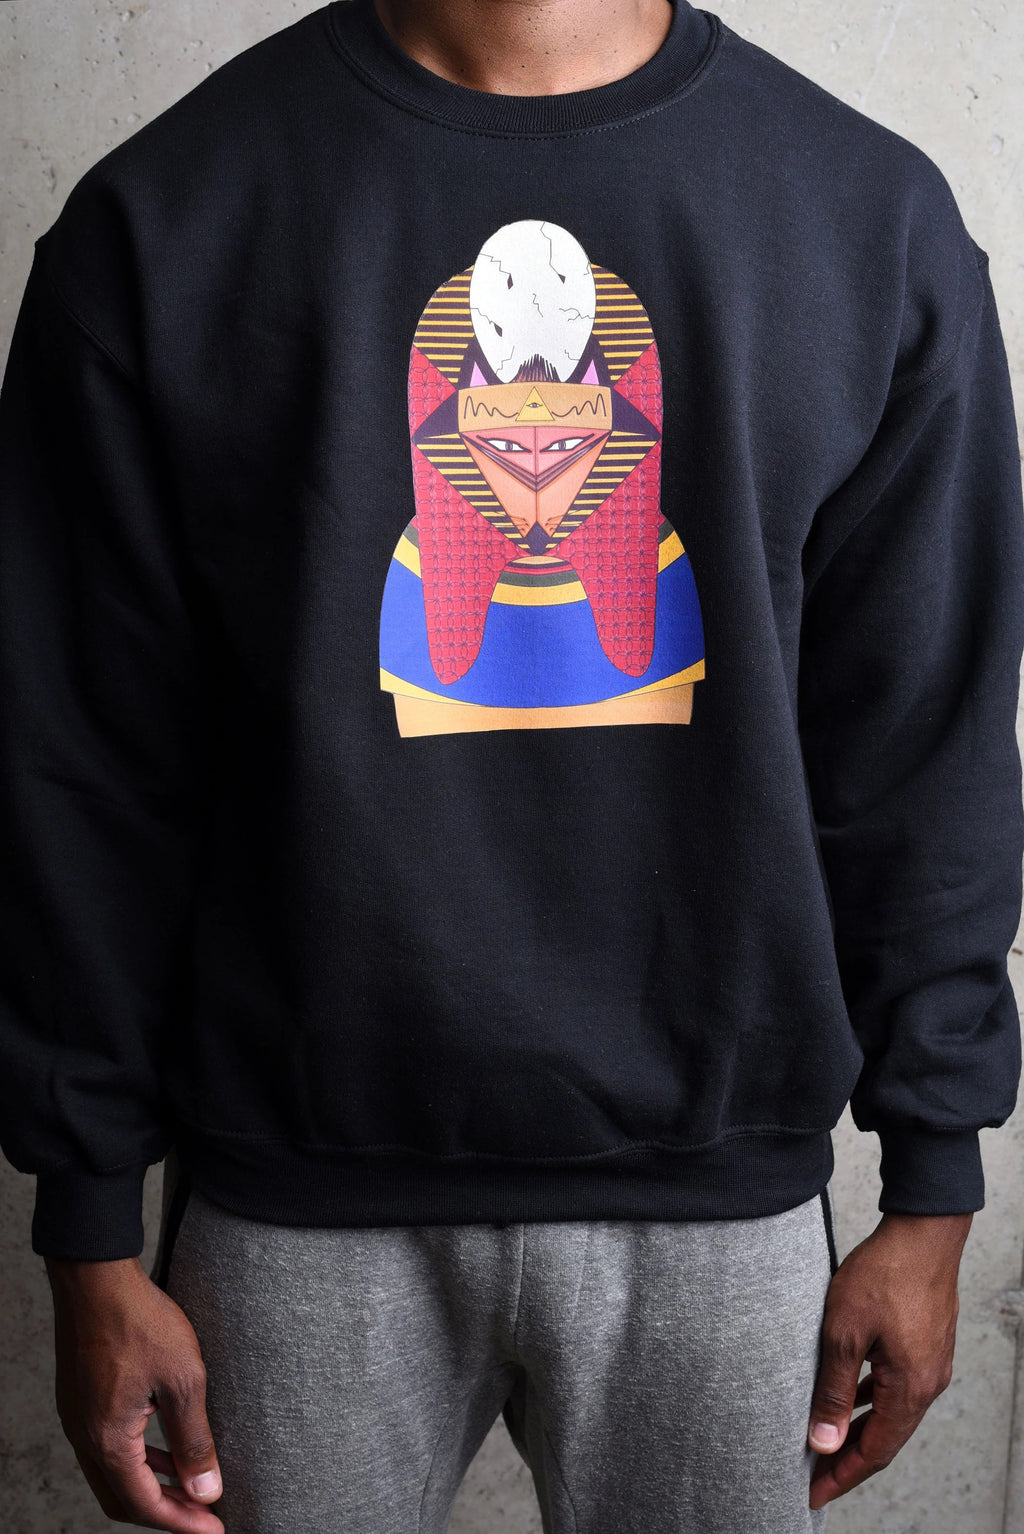 Jacques Isaac 'Life after Death' sweater